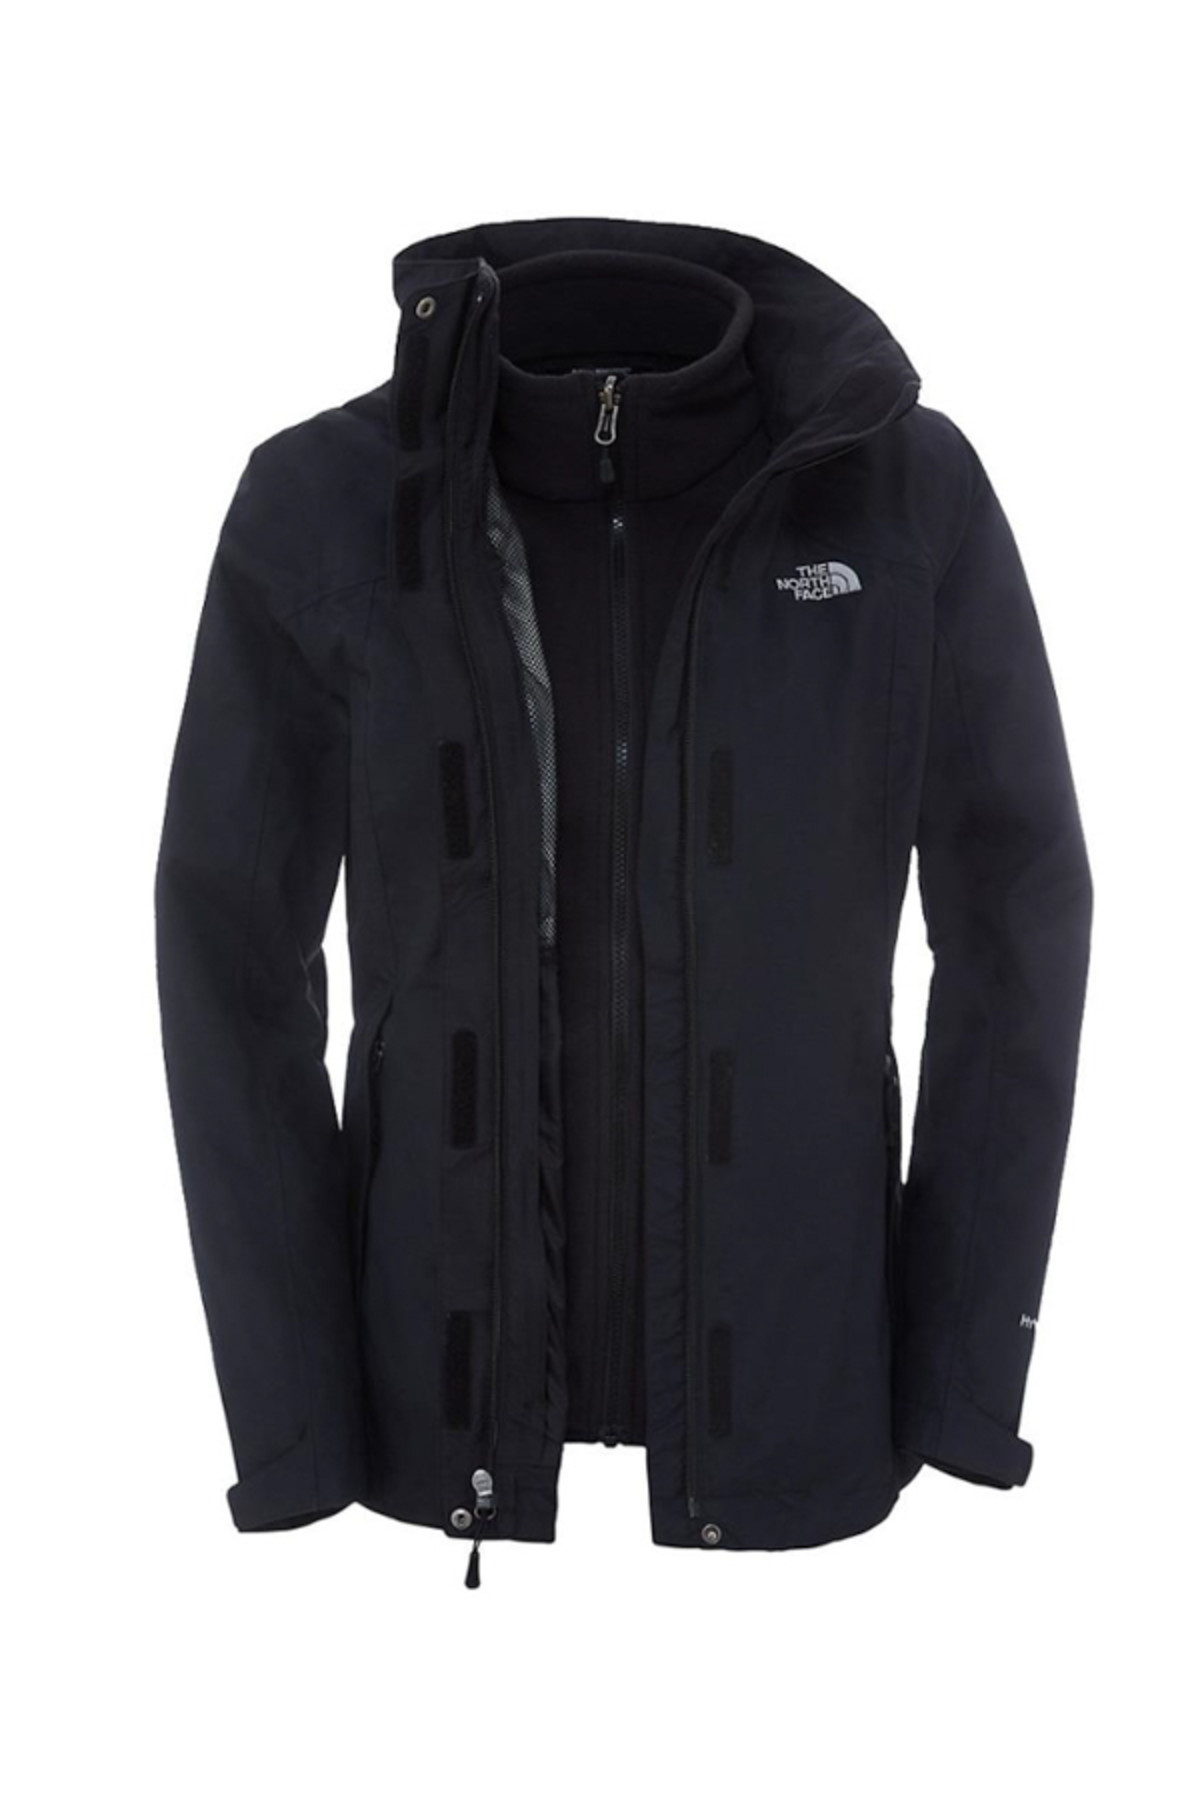 The North Face The North Face Evolution Iı Triclimate Kadın Mont Siyah – 1068.81 TL